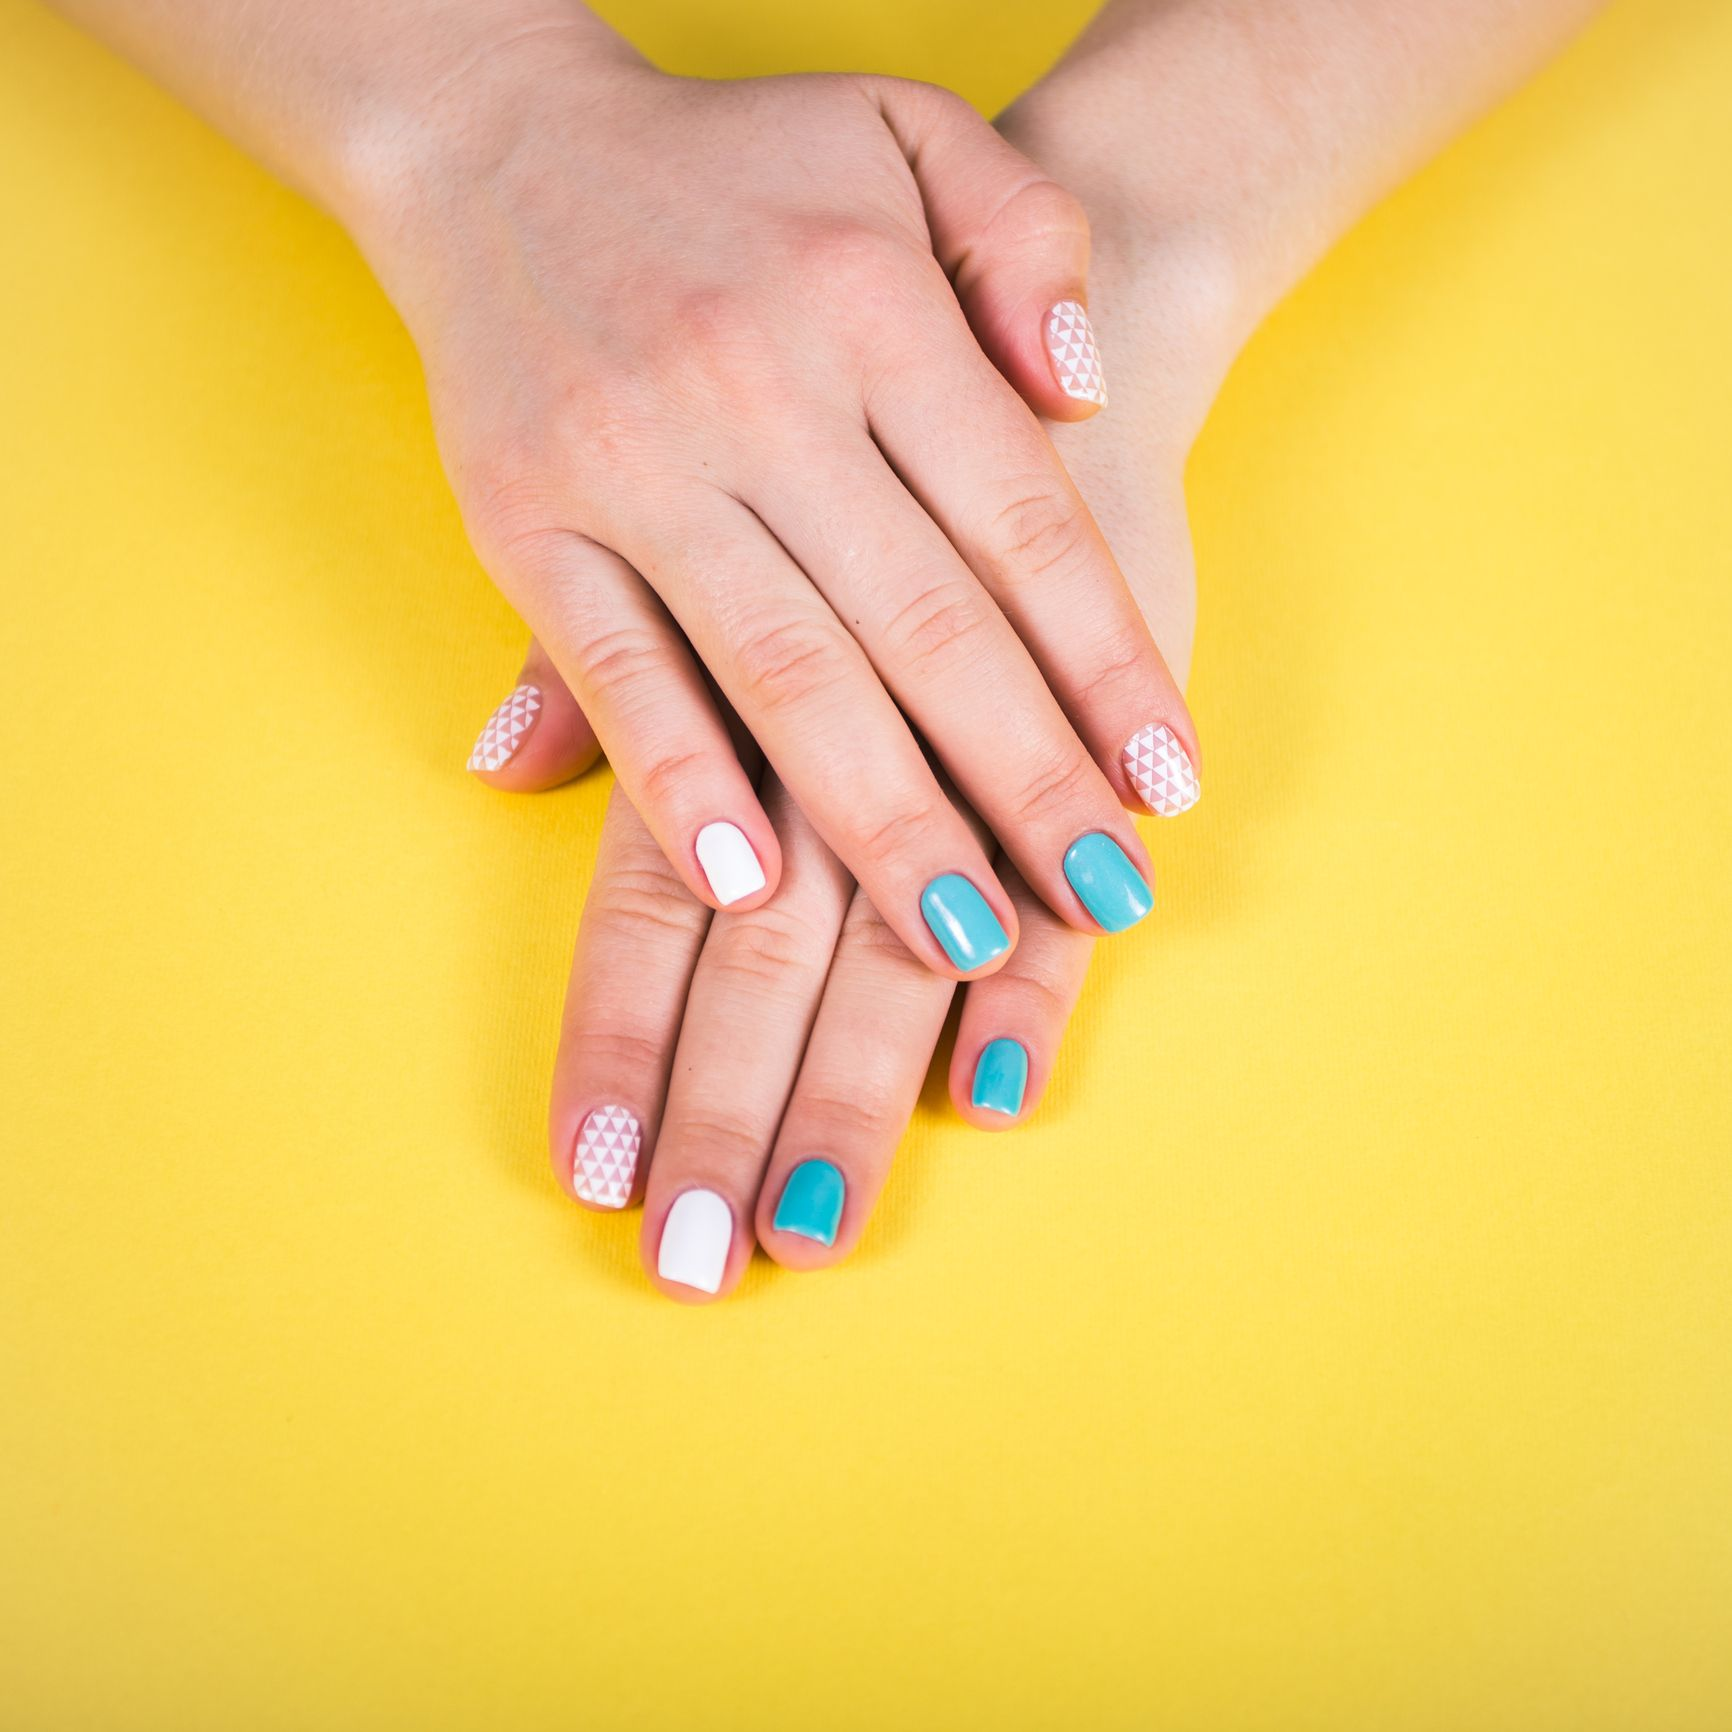 How To Remove Gel Nail Polish At Home - How To Remove Gel Polish